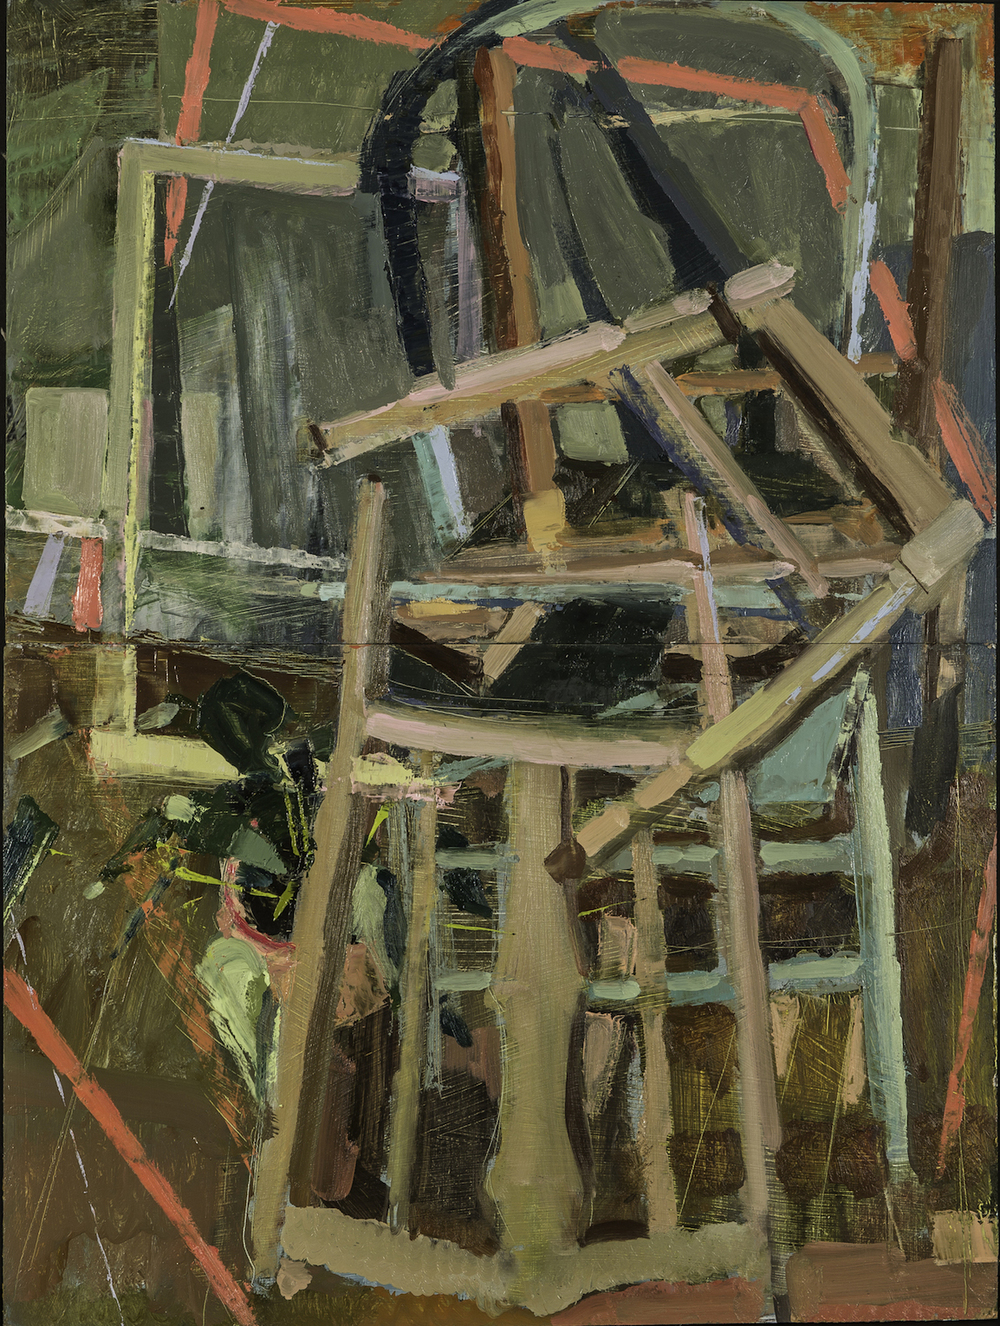 Night Chairs and Broken Windows, Home Made Oil on Panels 30 x 19 Jesse Thomas